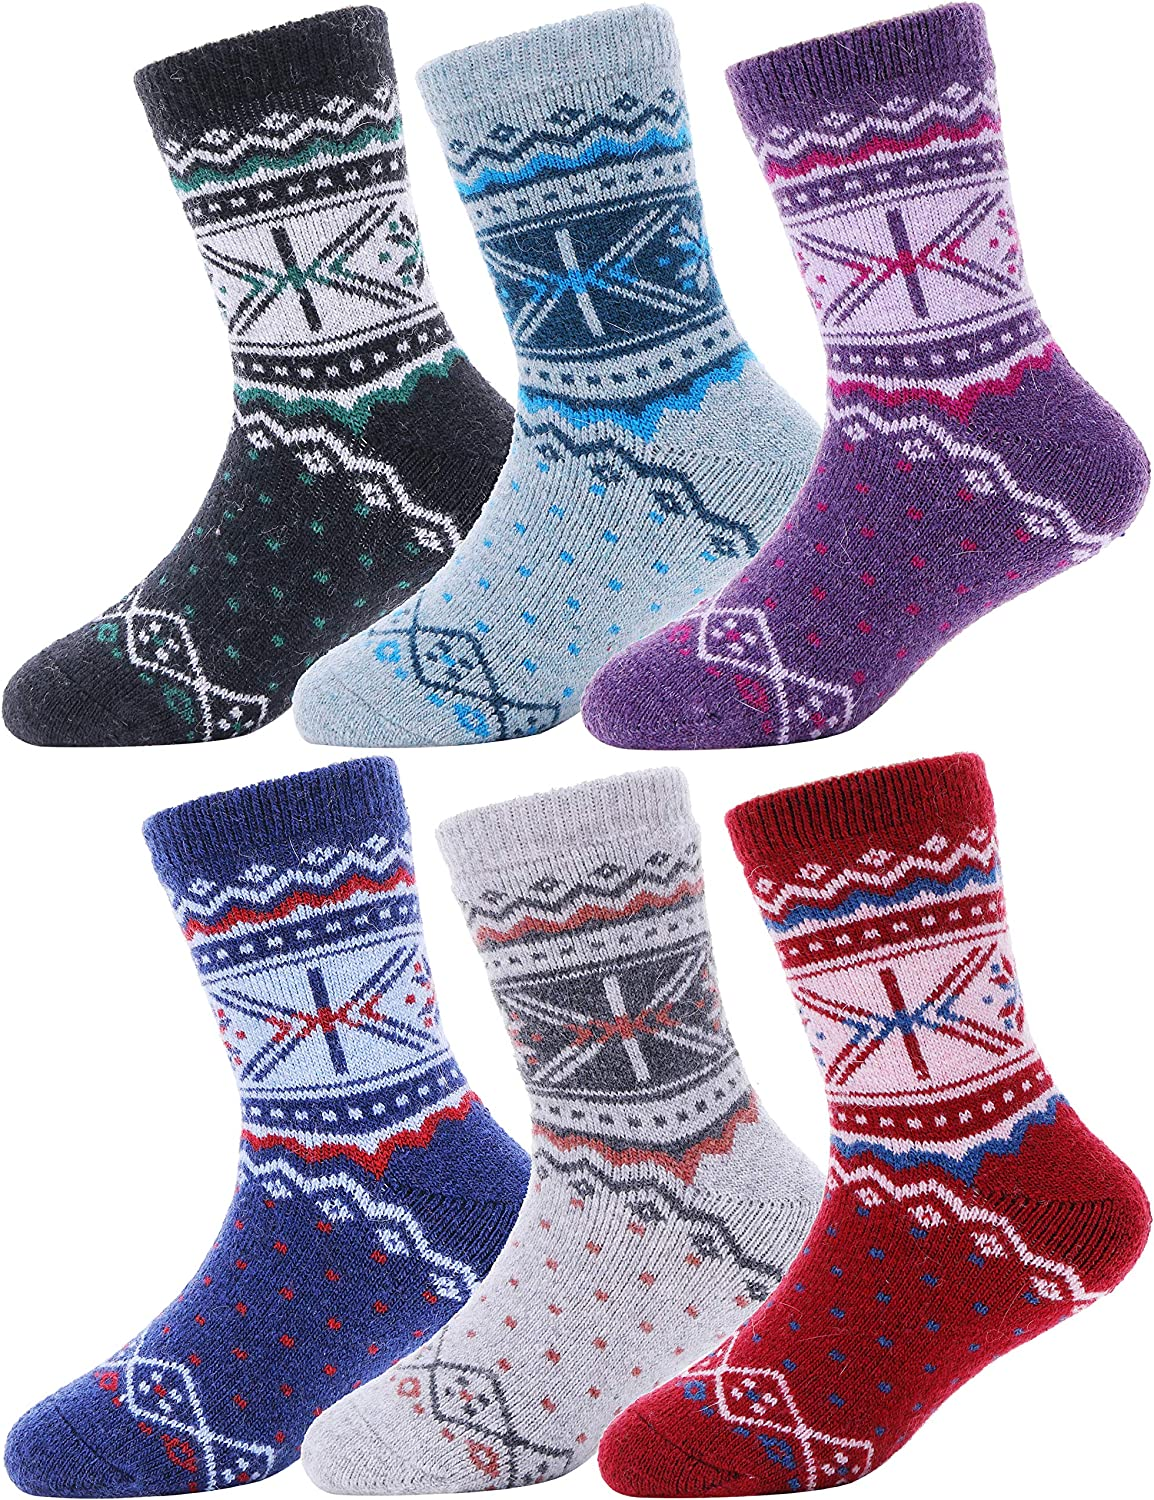 Kids Girls Boys Wool Socks Thick Warm Thermal For Kid Child Toddlers Cotton Winter Snowflake Socks 6 Pairs